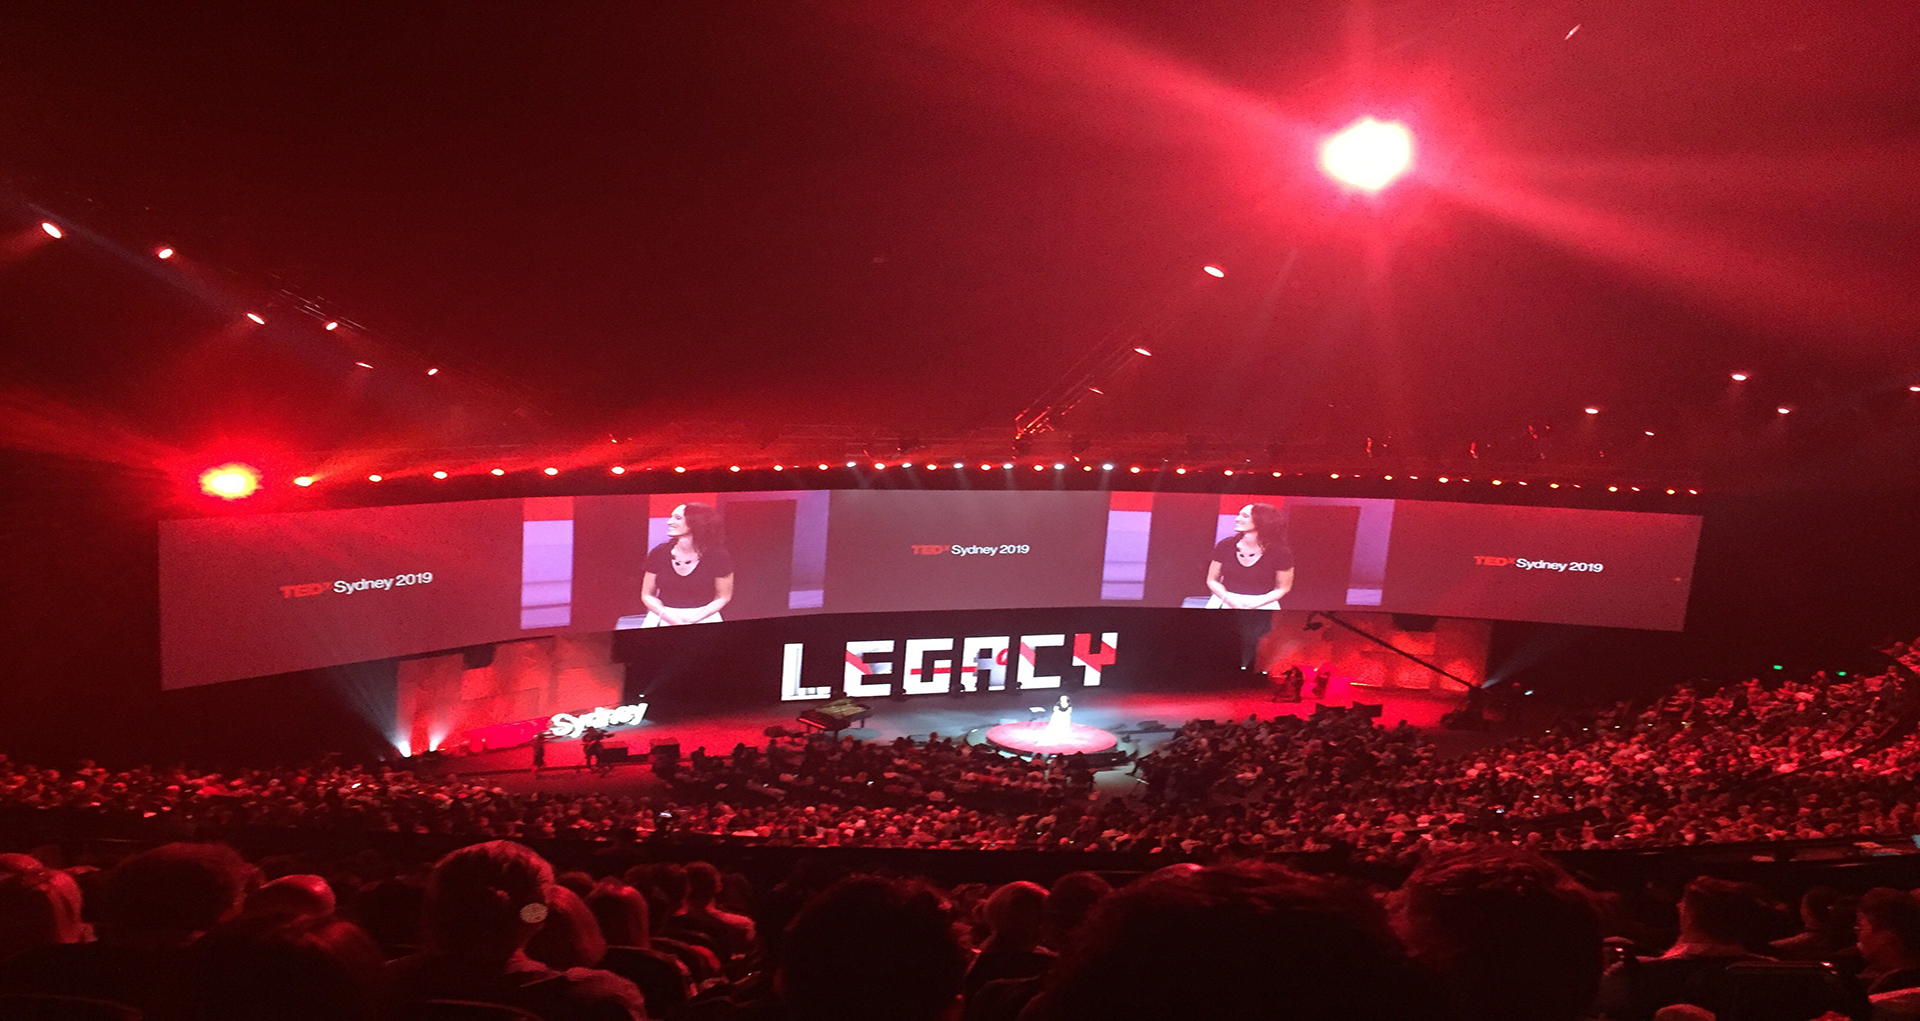 Legacy widescreen version